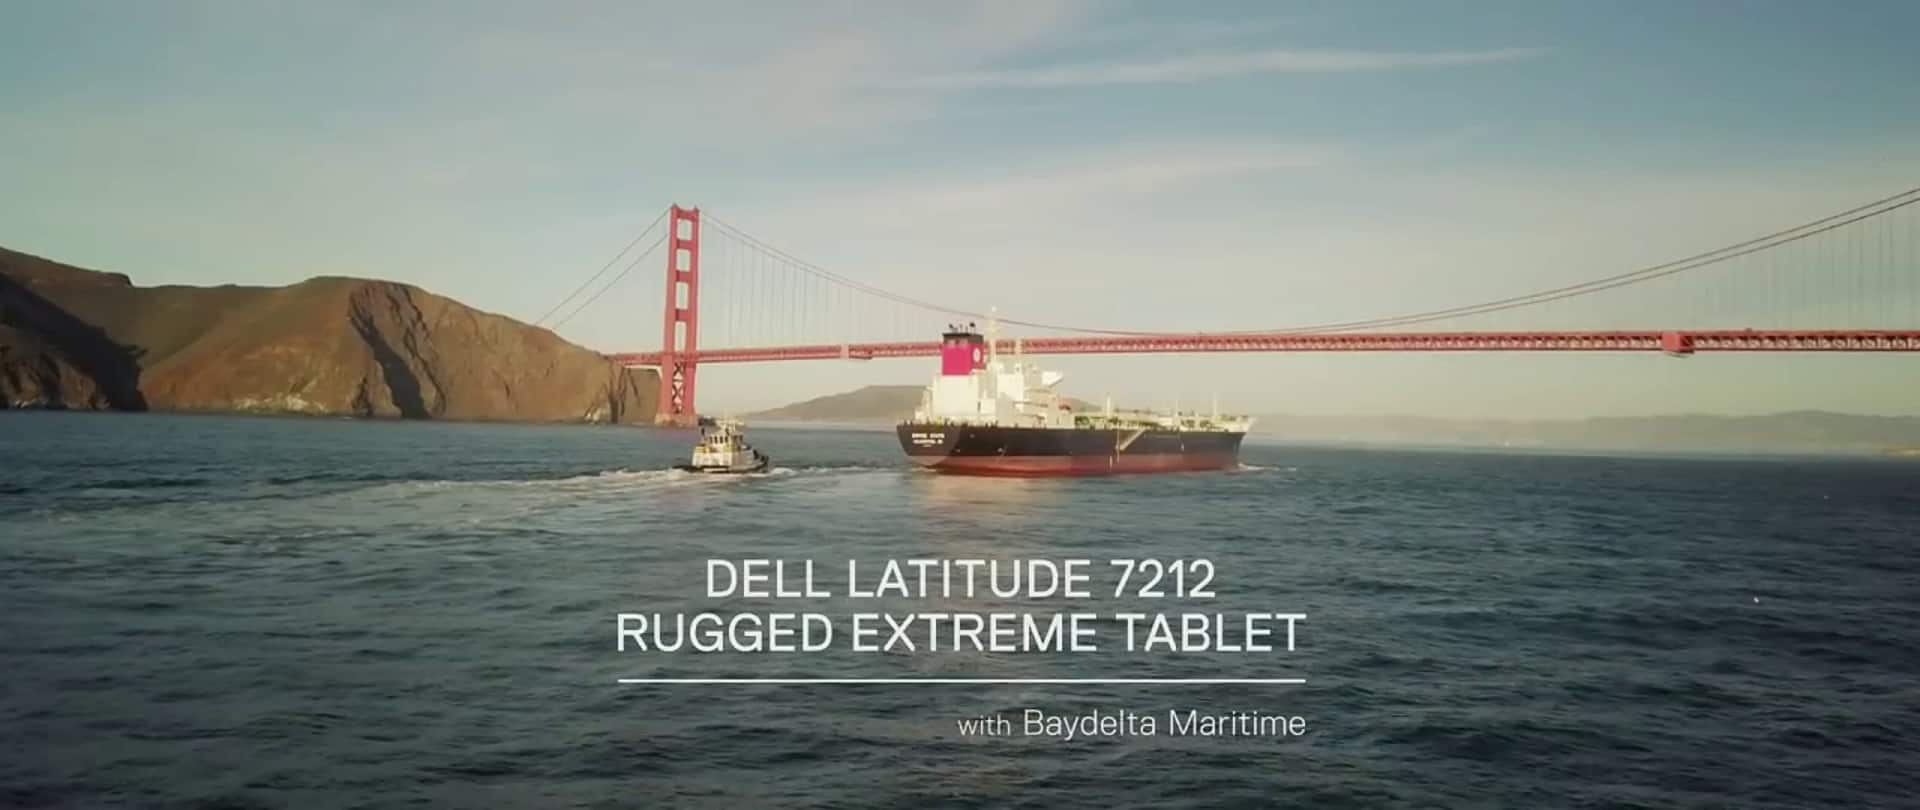 Video: Latitude 7212 Rugged Extreme Tablet and Baydelta Maritime  2:52